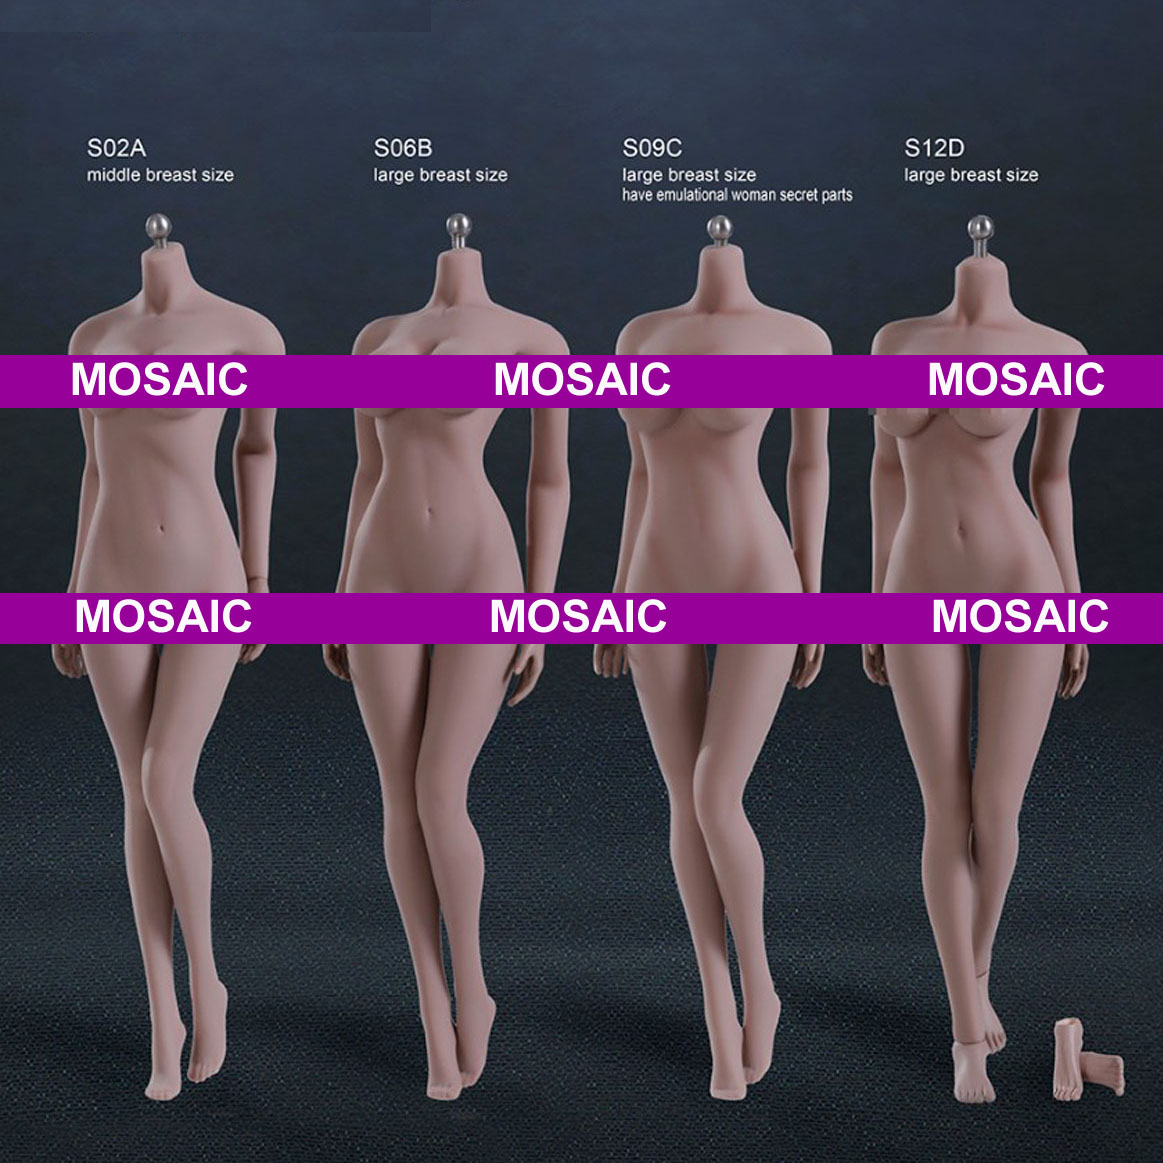 Mnotht PH S02A S06B S09C S12D / Super-Flexible Seamless Body With Stainless Steel Skeleton In Suntan Middle Breast Size doll доска для объявлений dz 1 2 j8b [6 ] jndx 8 s b